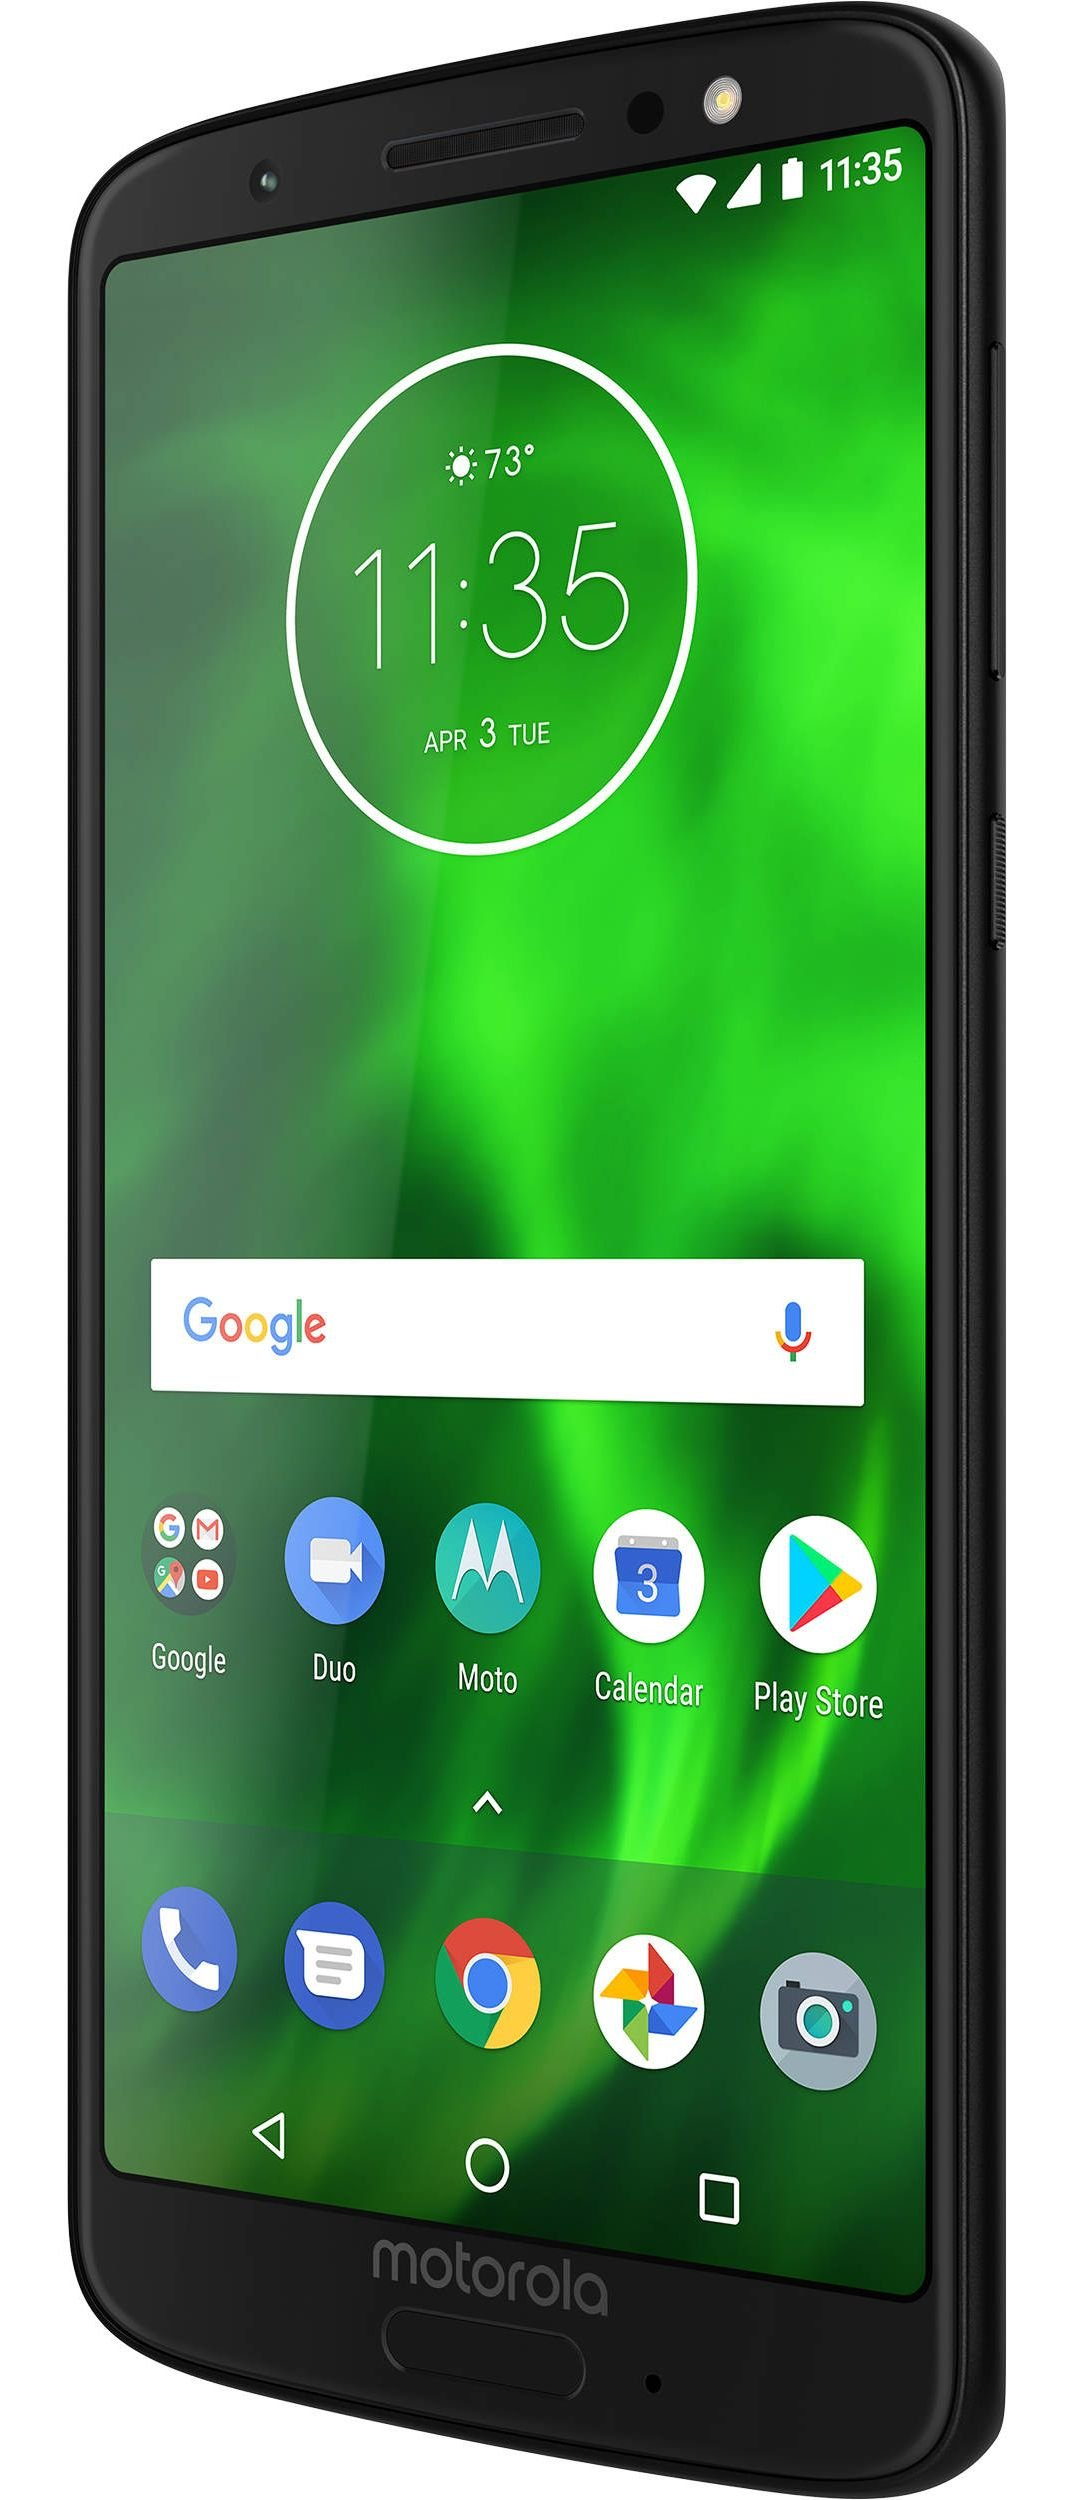 Unlock Bootloader on Moto G6 / G6 Play / G6 Plus [How To]